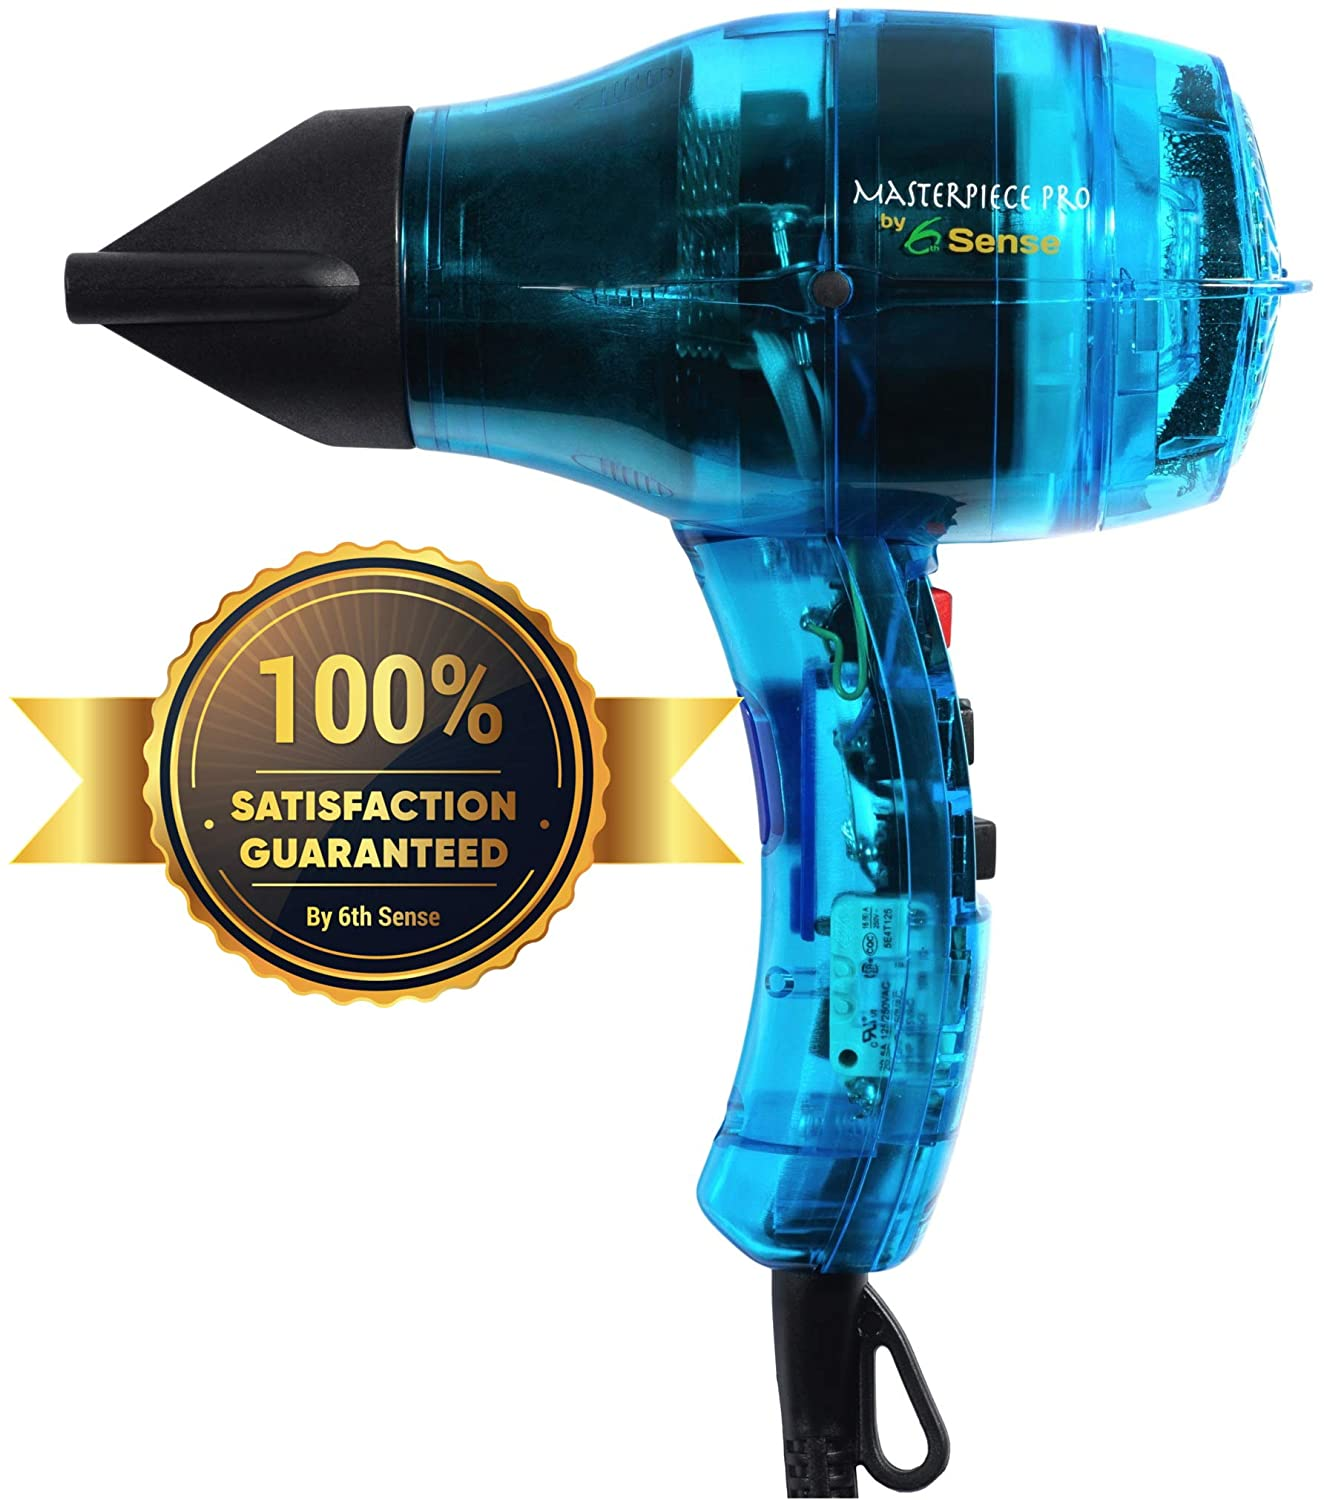 Professional Salon Ionic Hair Dryer Handcrafted in France for Europe s Finest Salons, Featherweight, Dual Ion Generator Function Builds Shine Volume 1600 Watts